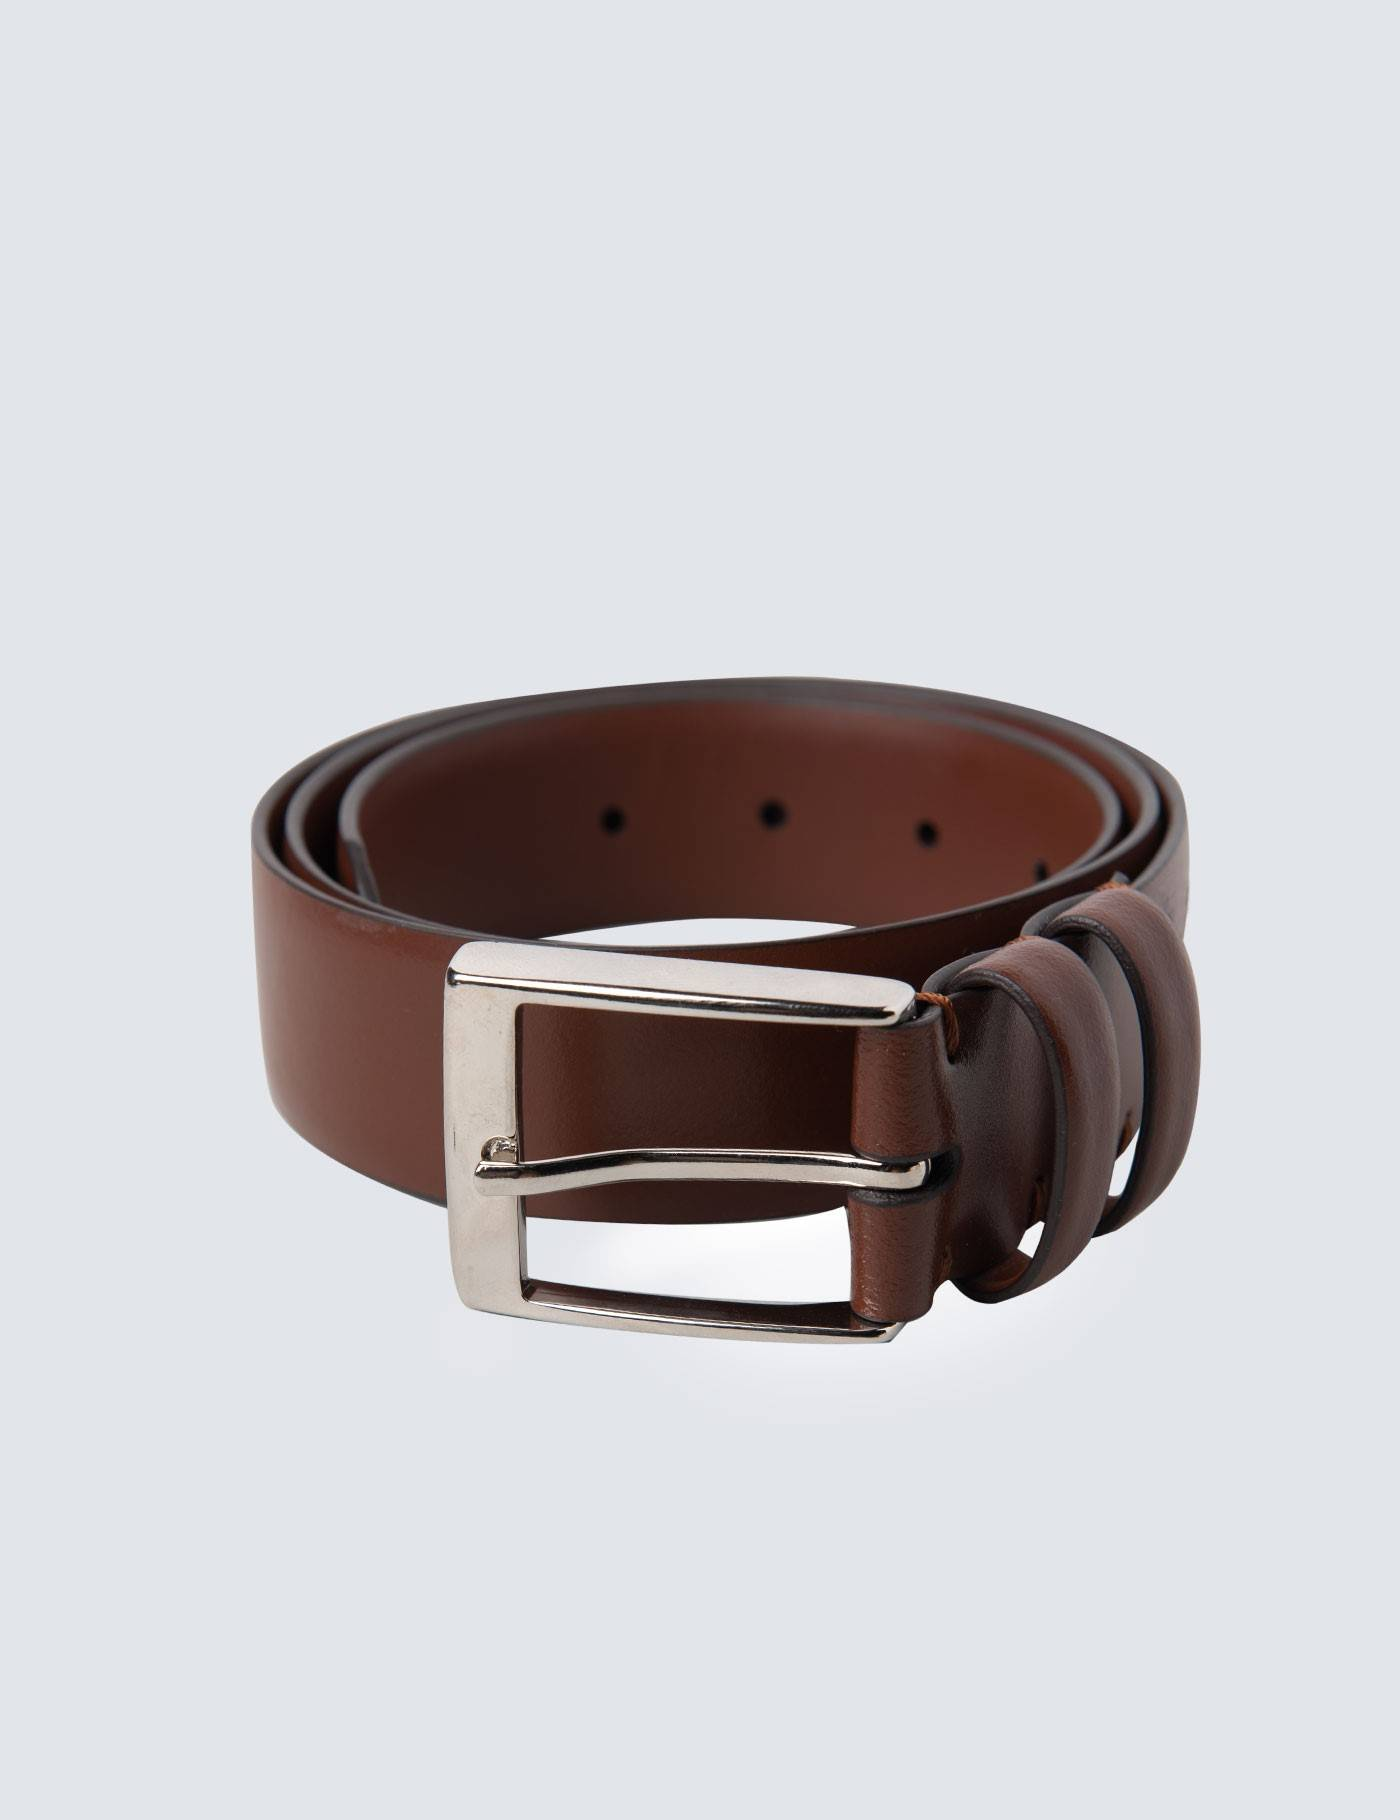 Hawes & Curtis Men's Leather Belt in Tan 2XL